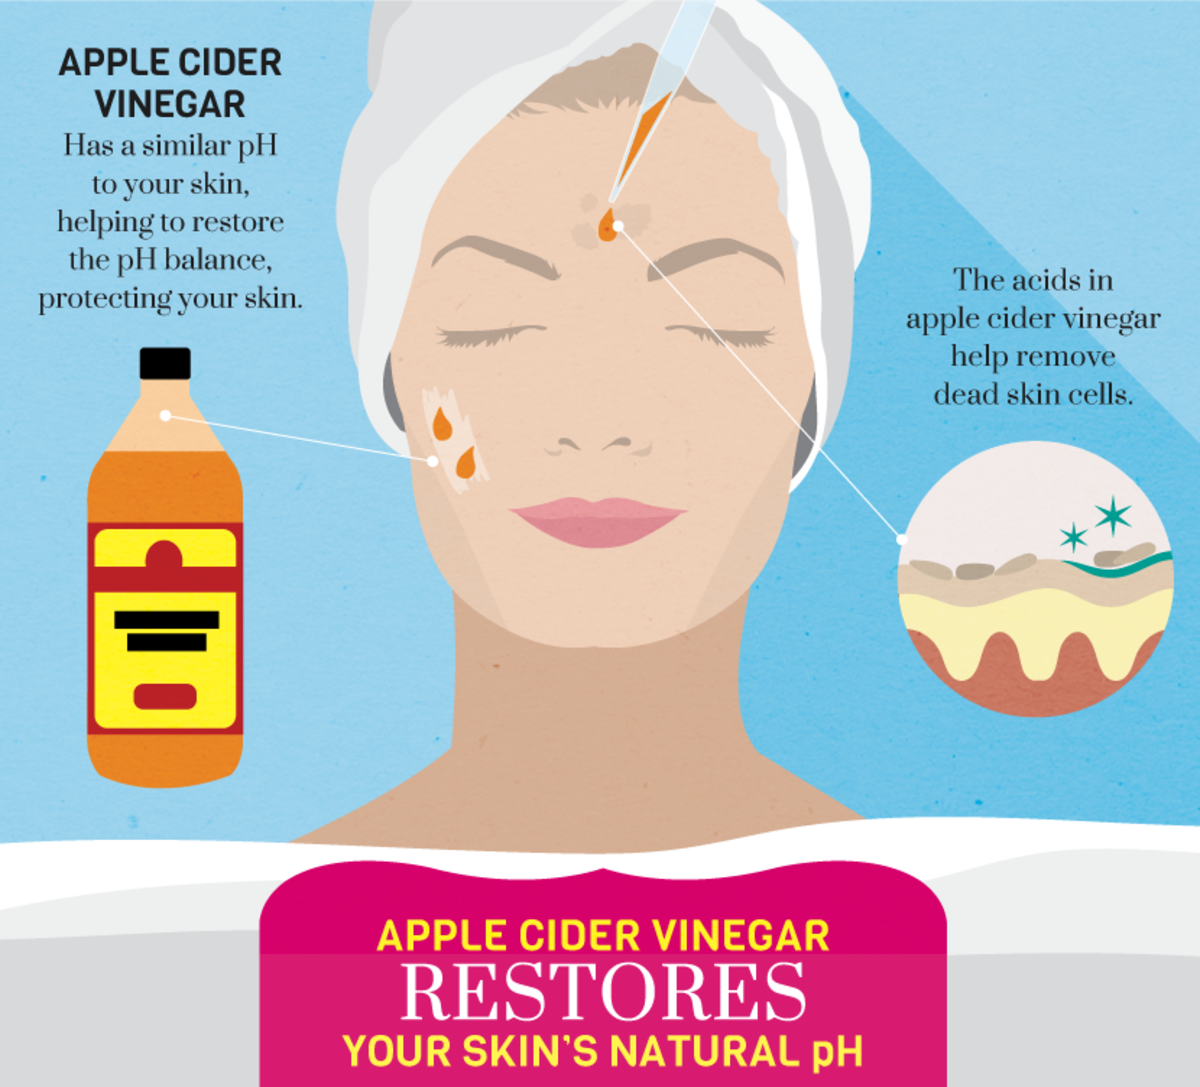 Apple cider vinegar has many benefits for the skin.